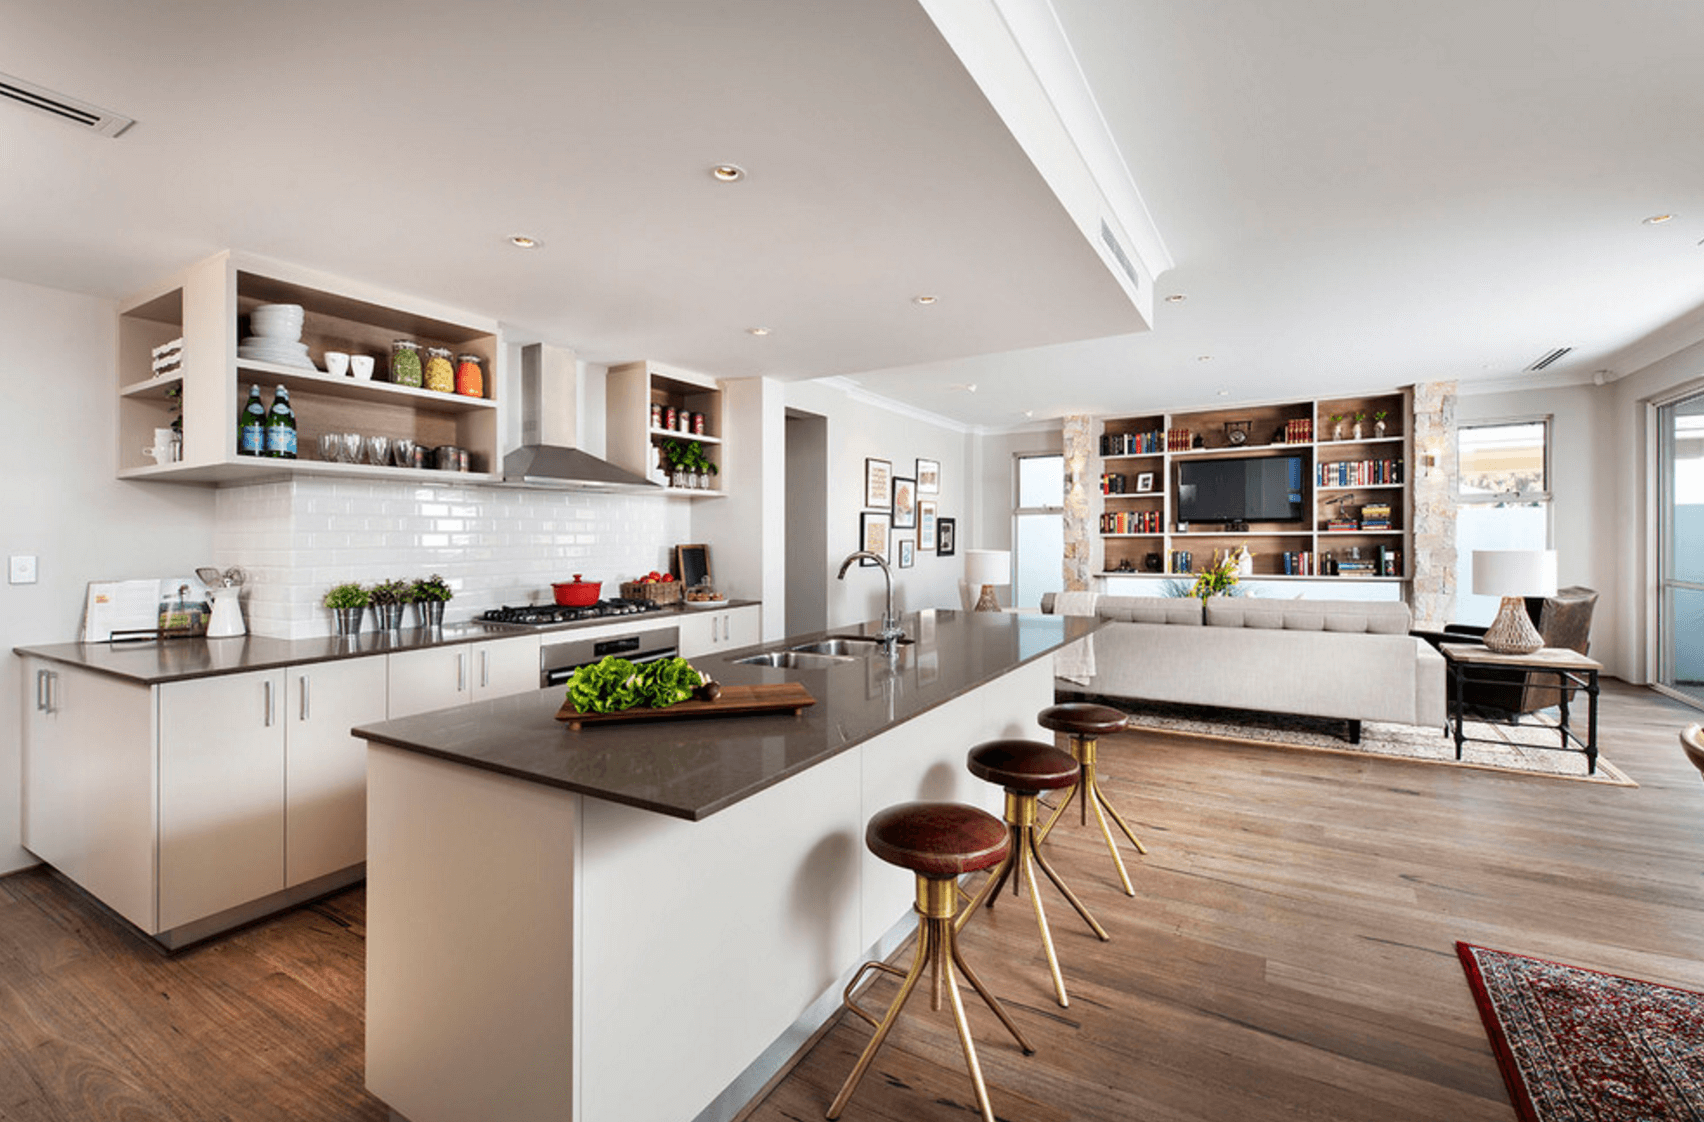 Open Floor Plans A Trend For Modern Living - Kitchen-design-interior-decorating-set